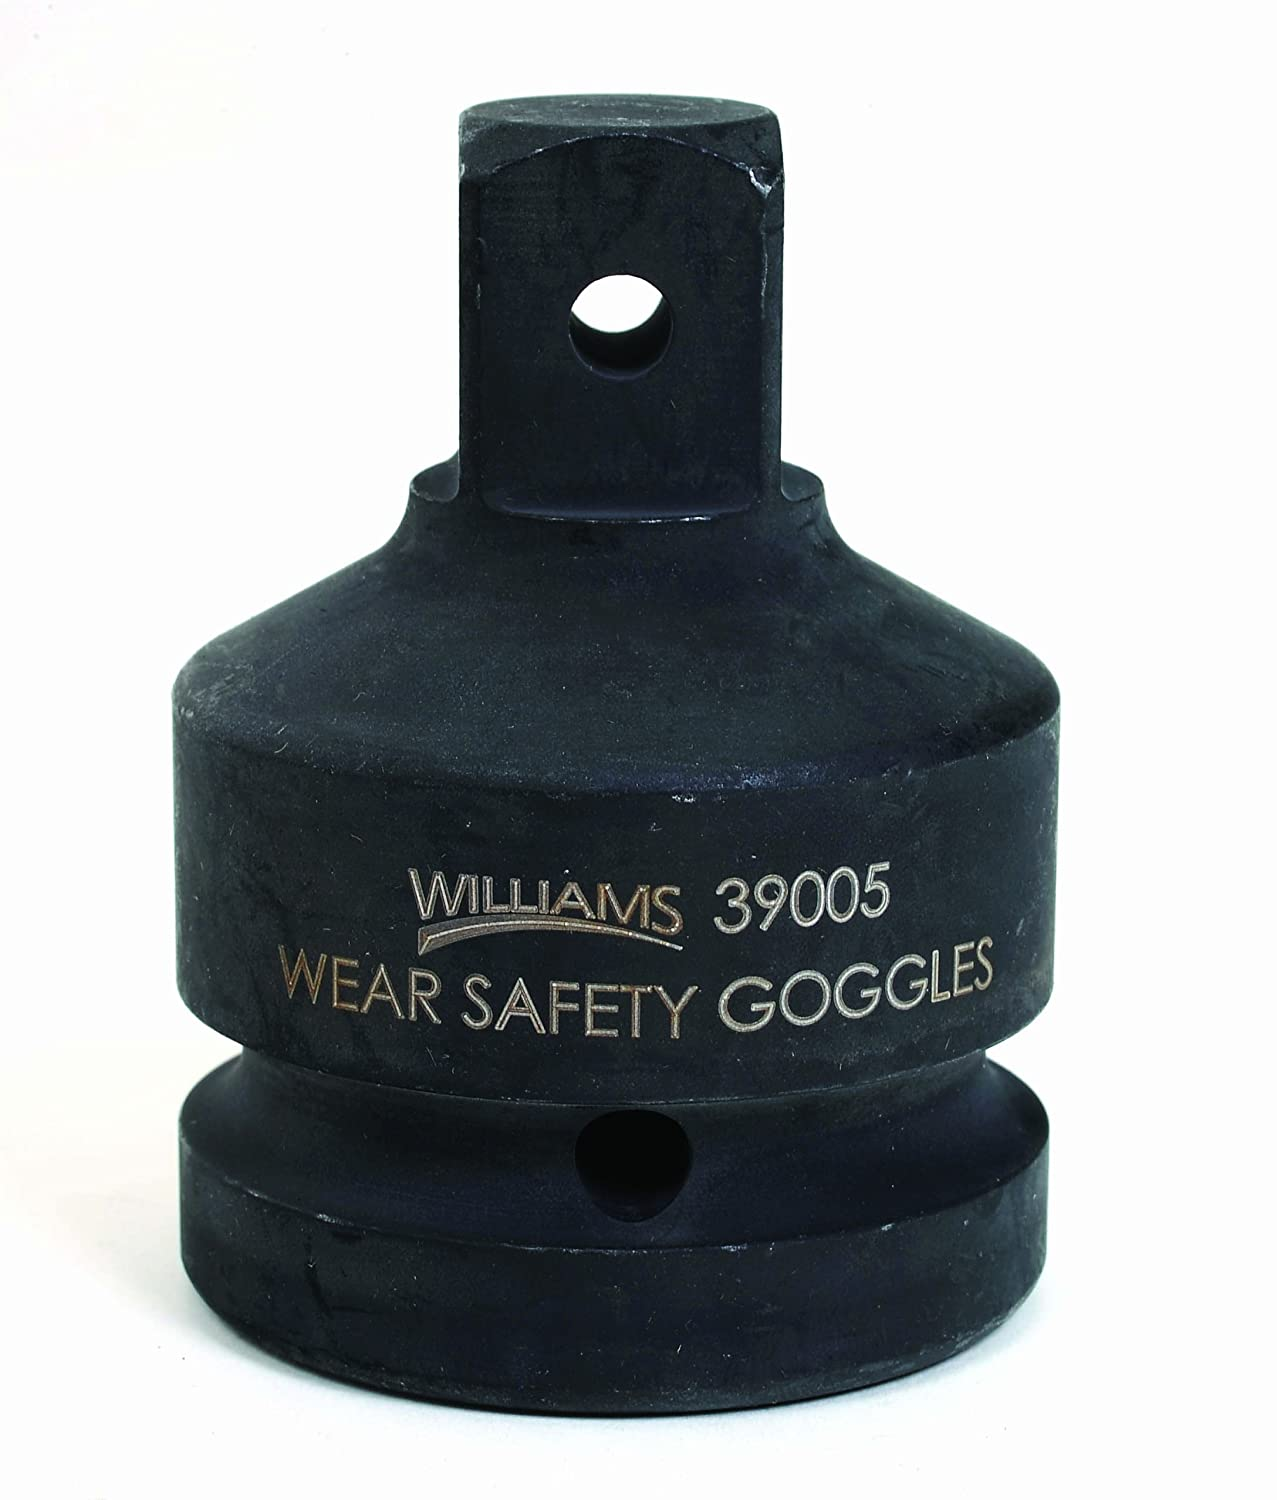 Williams 39005 1-Inch Drive Impact Socket Adapter, 3/4'M X 1'F Adapter 3/4M X 1F Adapter JH Williams Tool Group